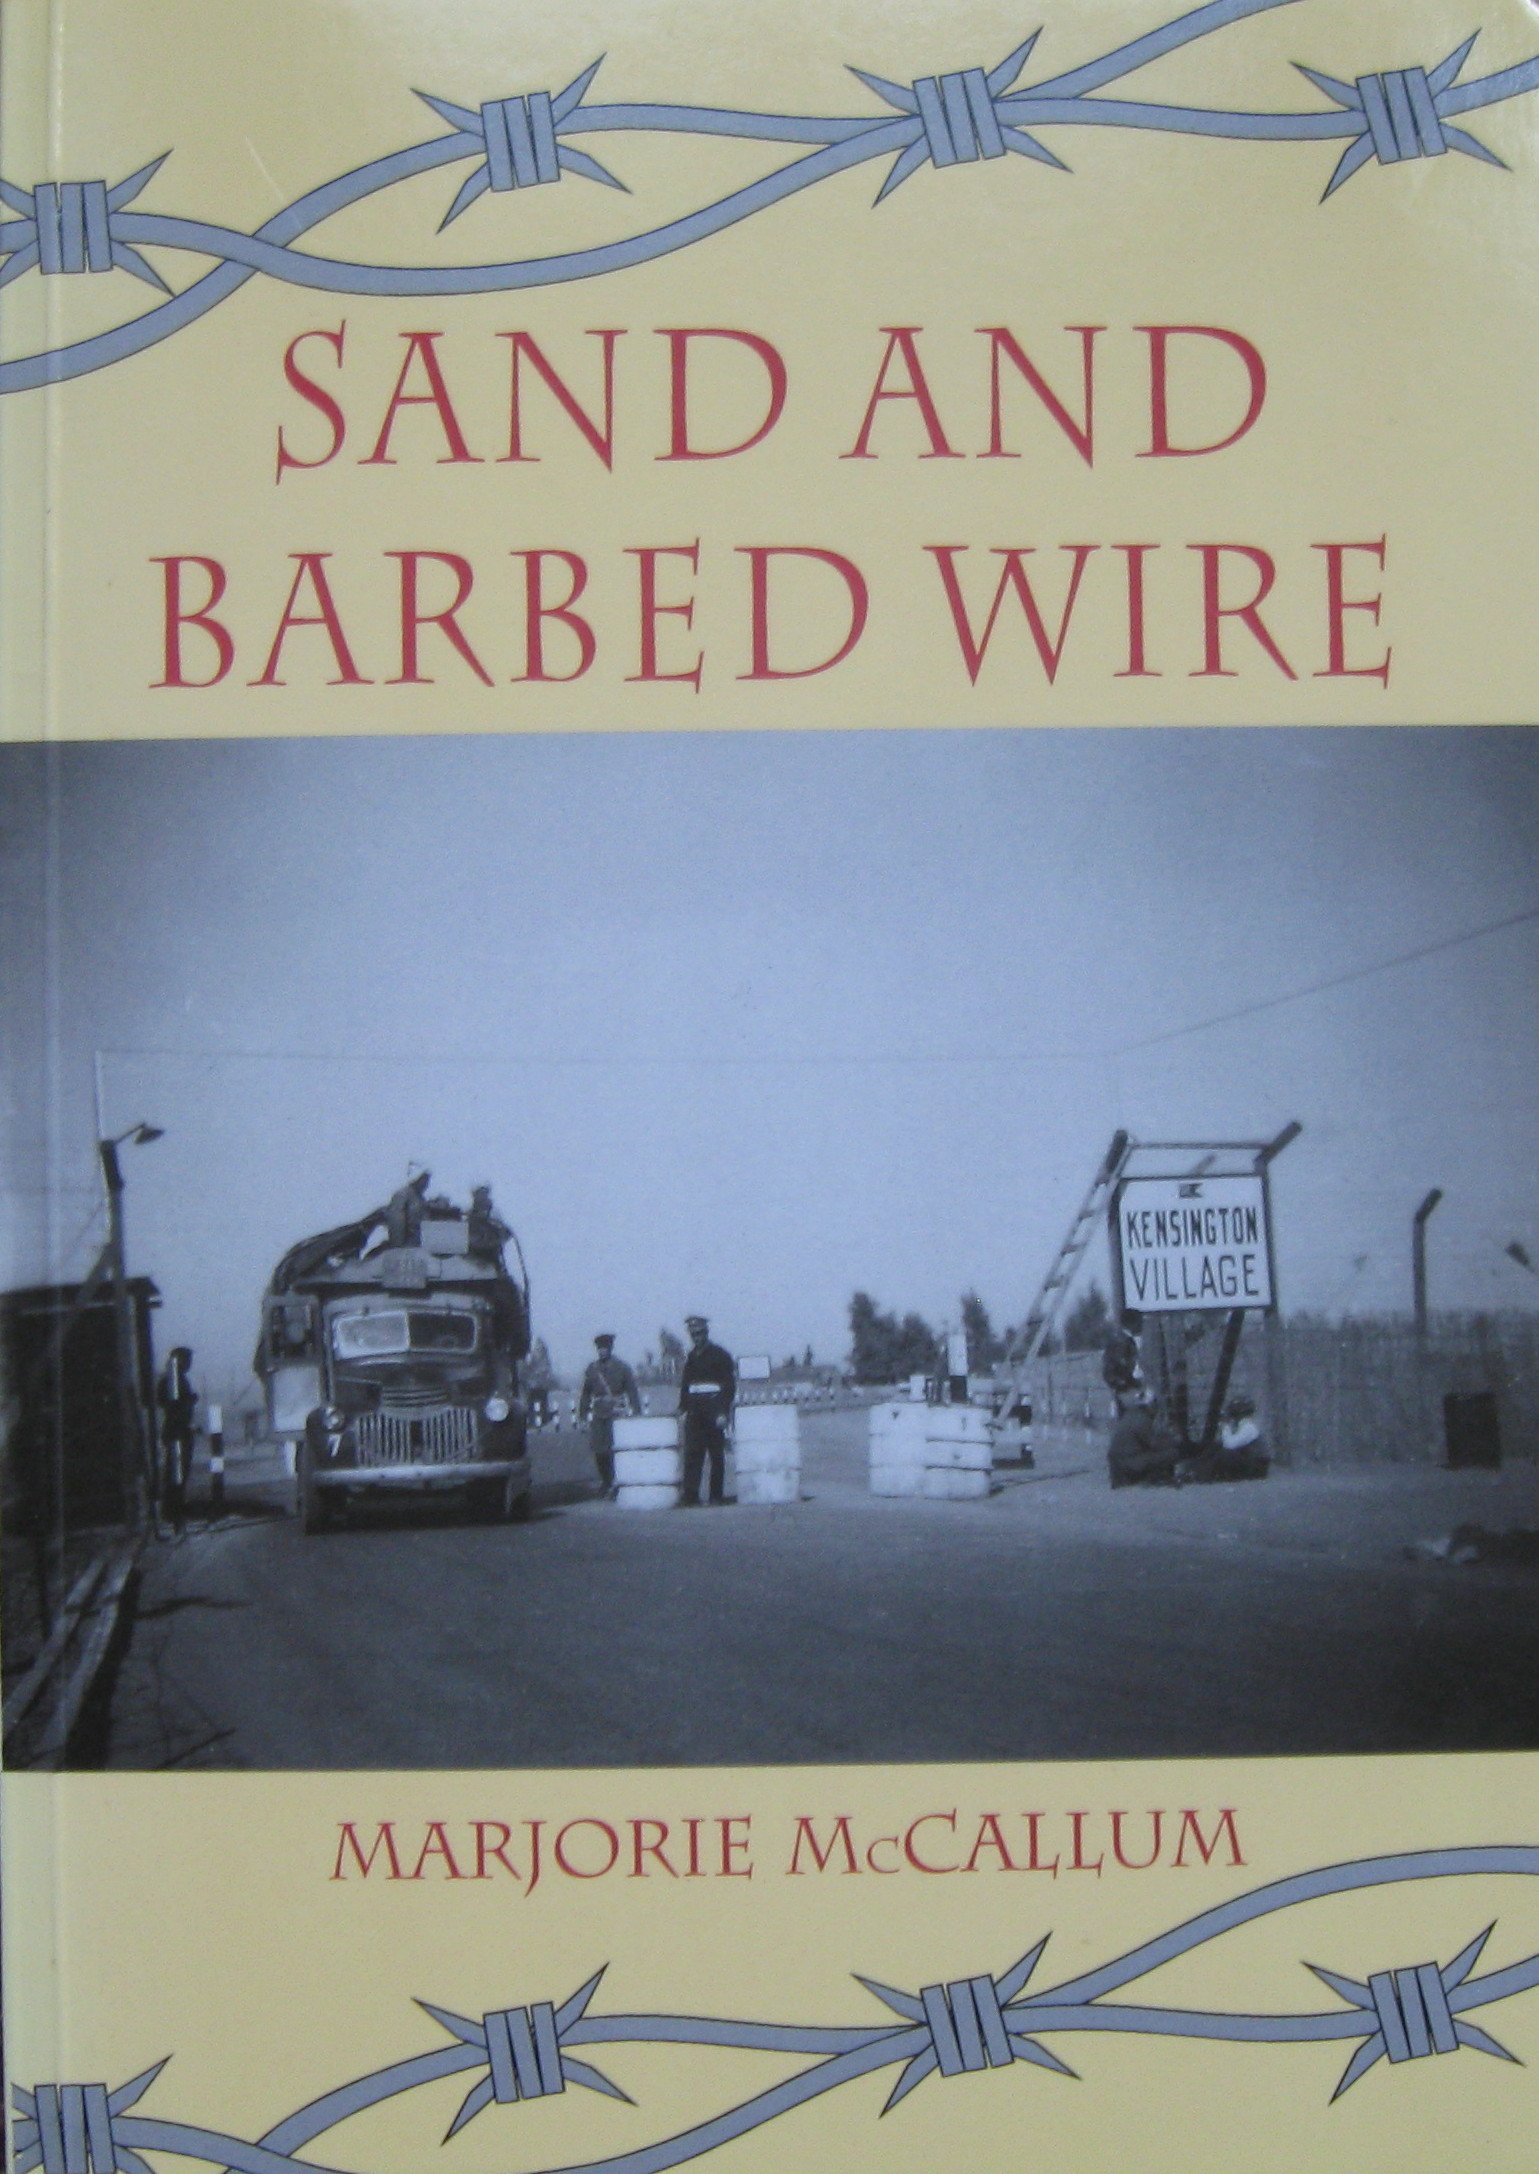 Sand And Barbed Wire Marjorie Mccallum 9781861063434 Wiring Simplified Book Books